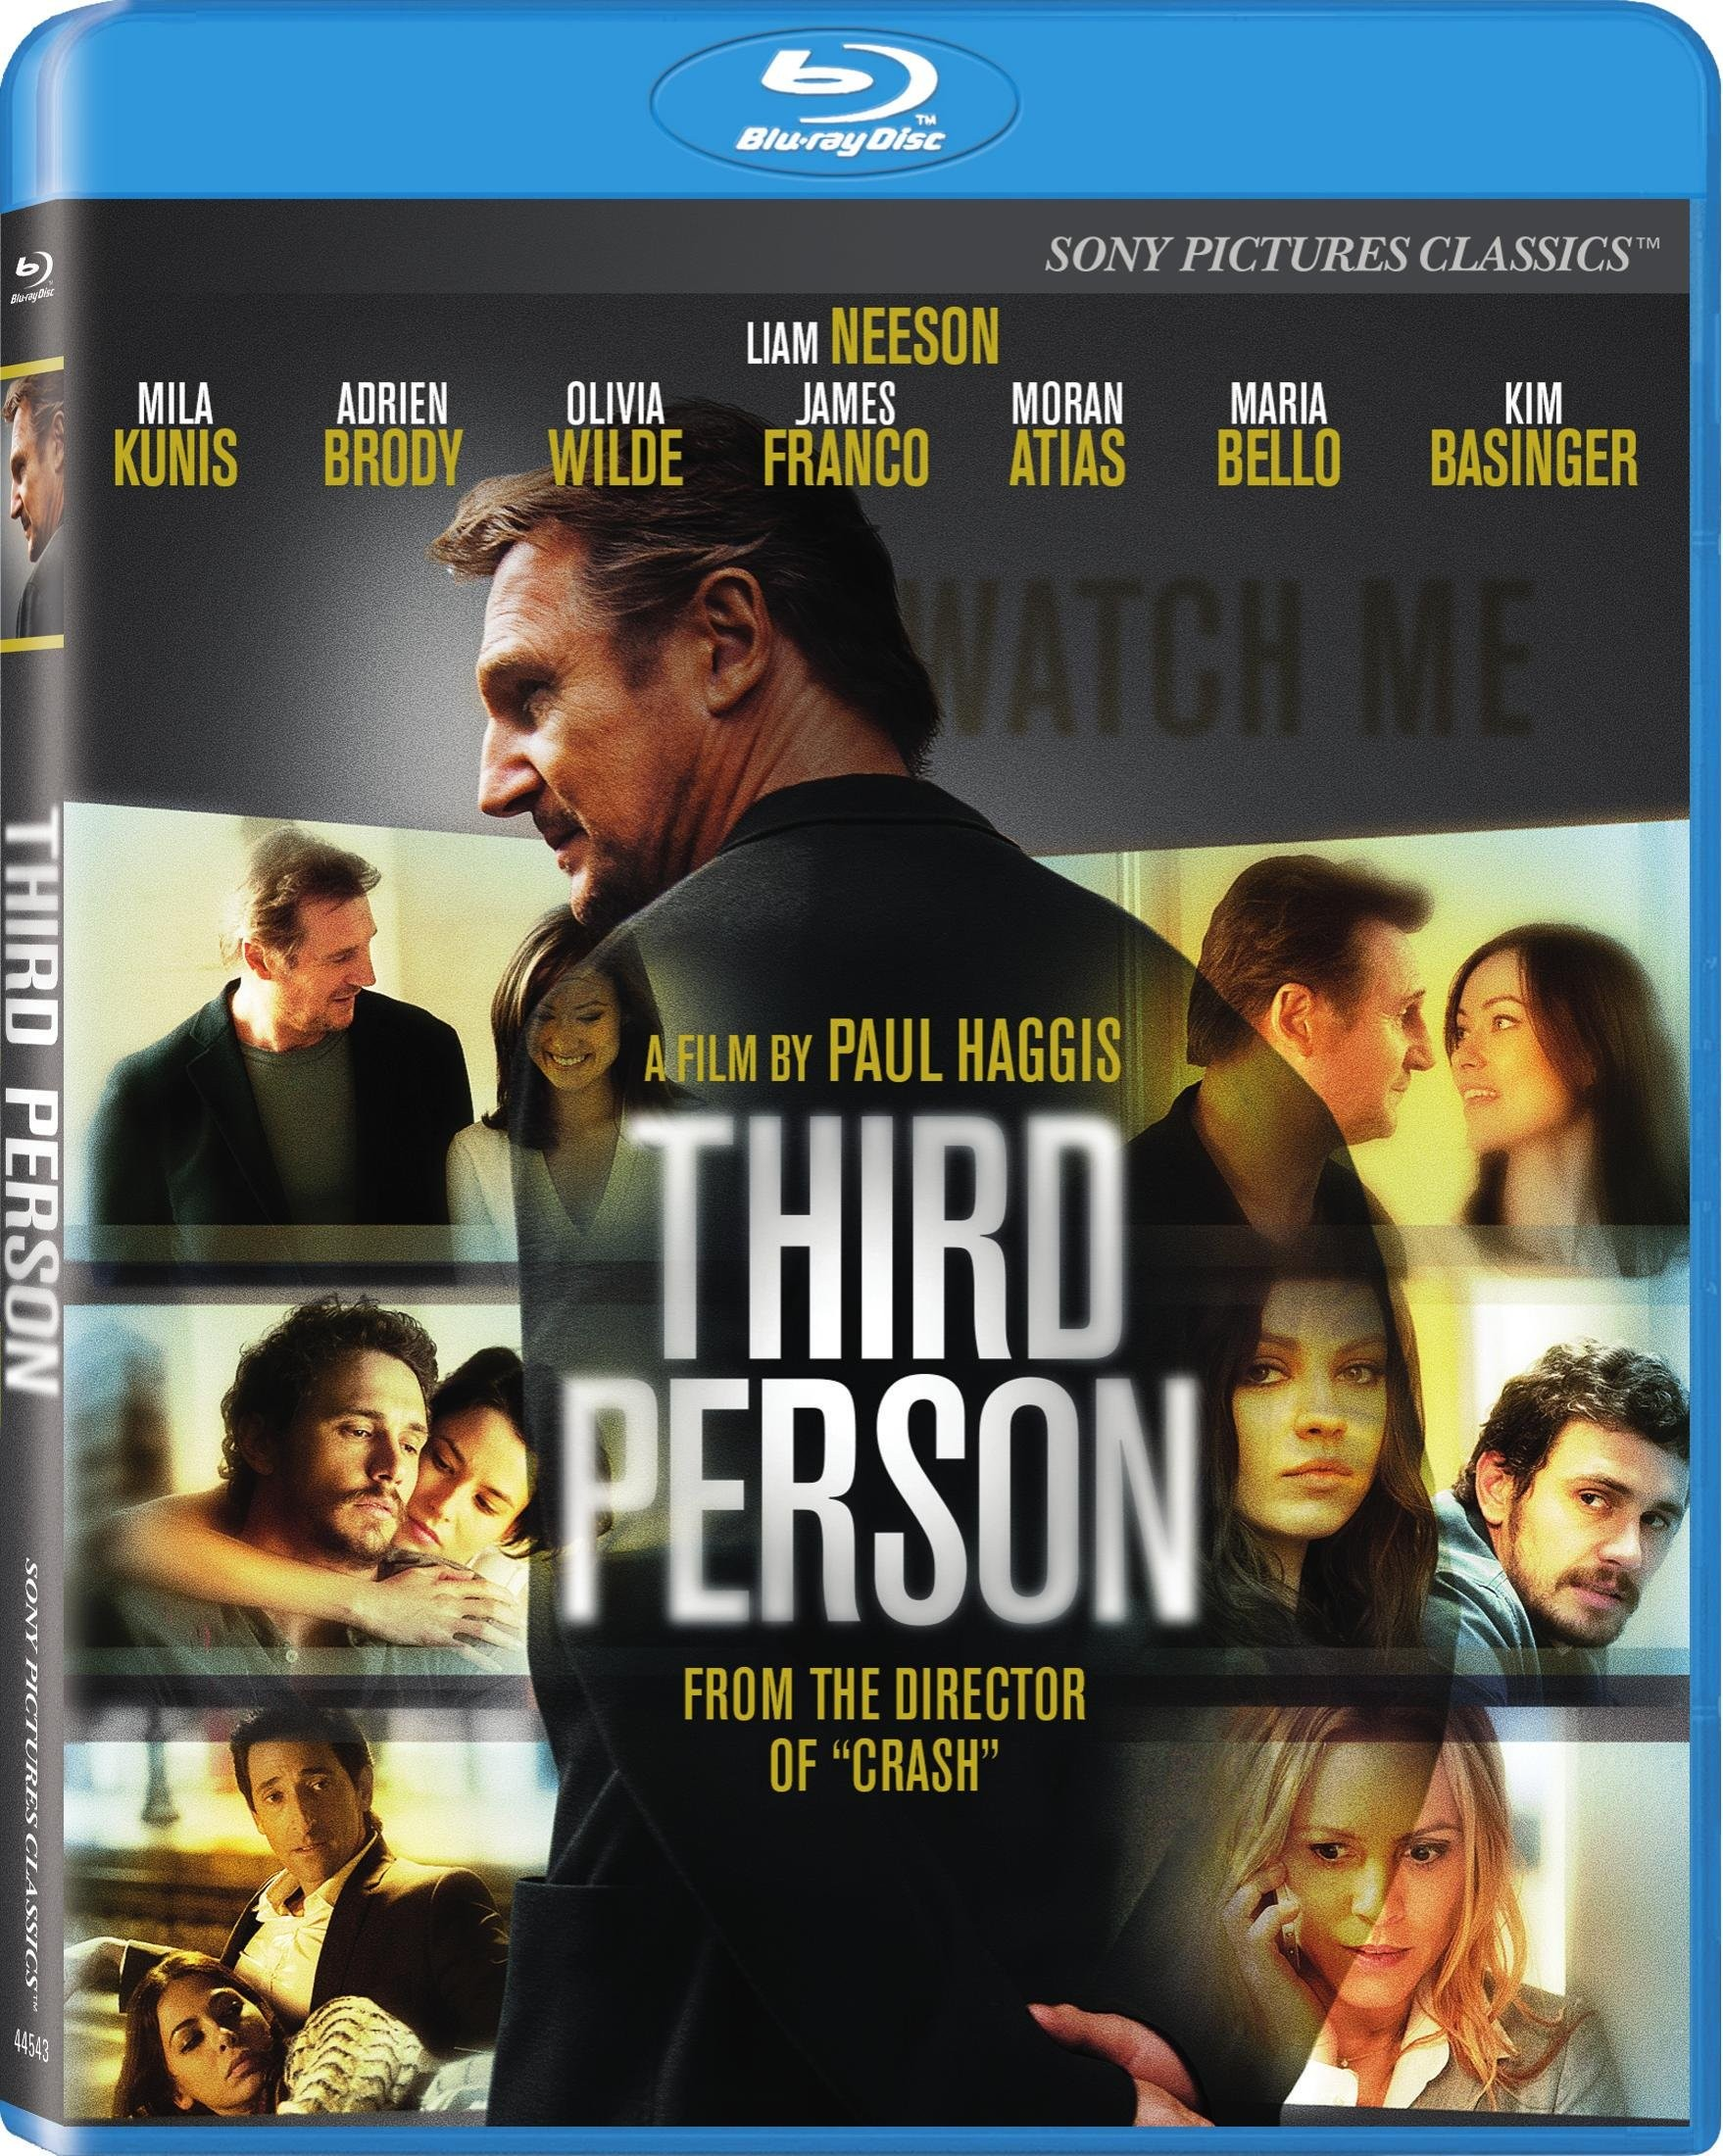 Third Person Blu-ray Review